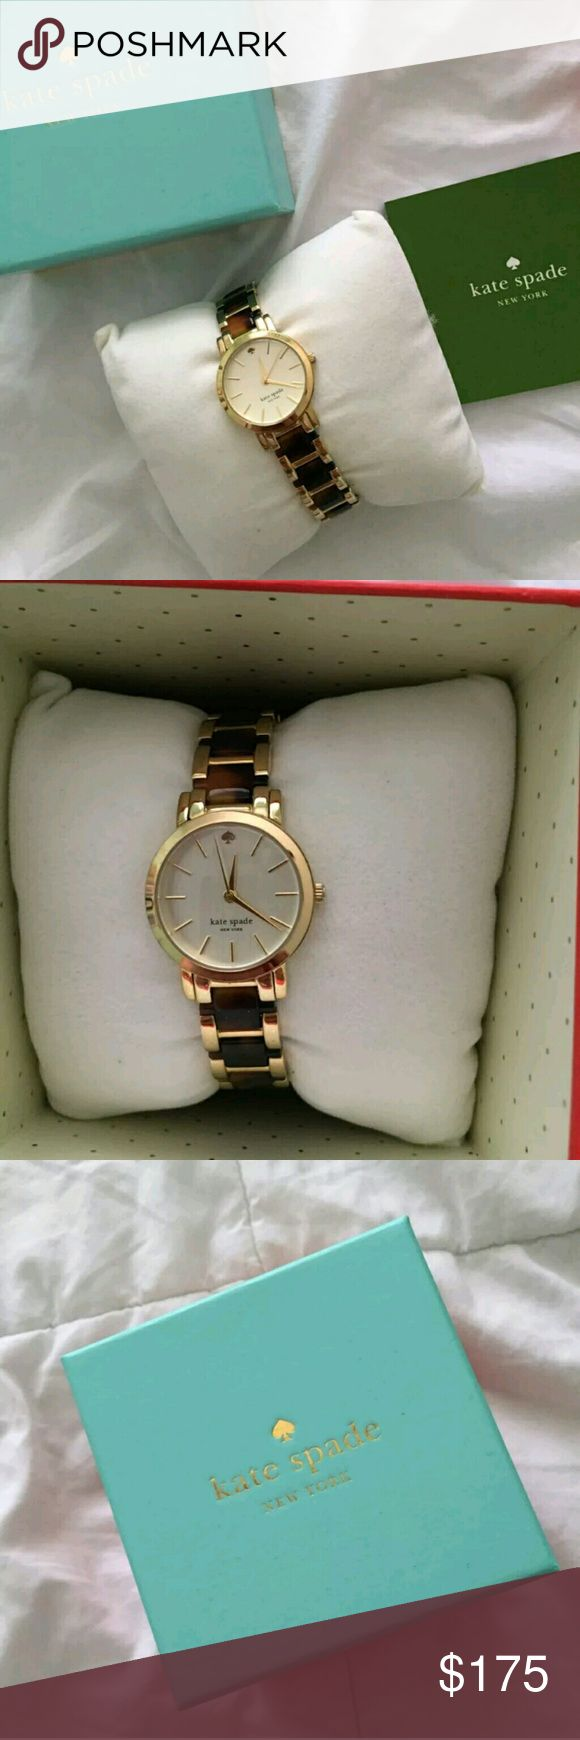 Kate Spade Tortoise Watch For sale is a gently used Kate Spade New York women's gold and tortoiseshell wrist watch. Watch is in excellent condition; no scratches on the face. Comes with original box, booklet, and extra links. From a smoke-free home. Kate spade  Accessories Watches